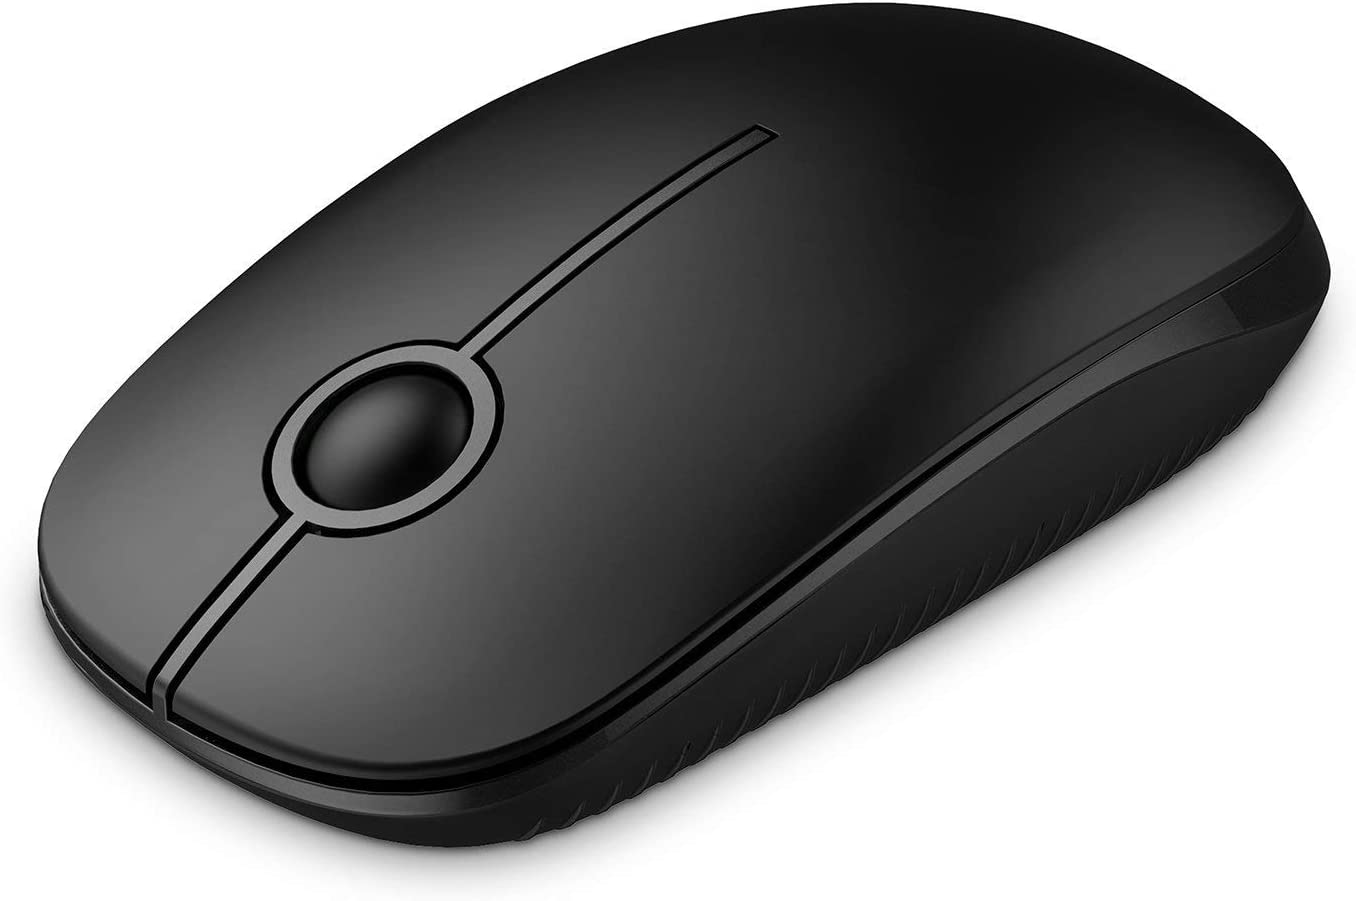 Macb 2.4G Slim Wireless Mouse with Nano Receiver PC Less Noise Computer Value-5-Star Laptop Portable Mobile Optical Mice for Notebook